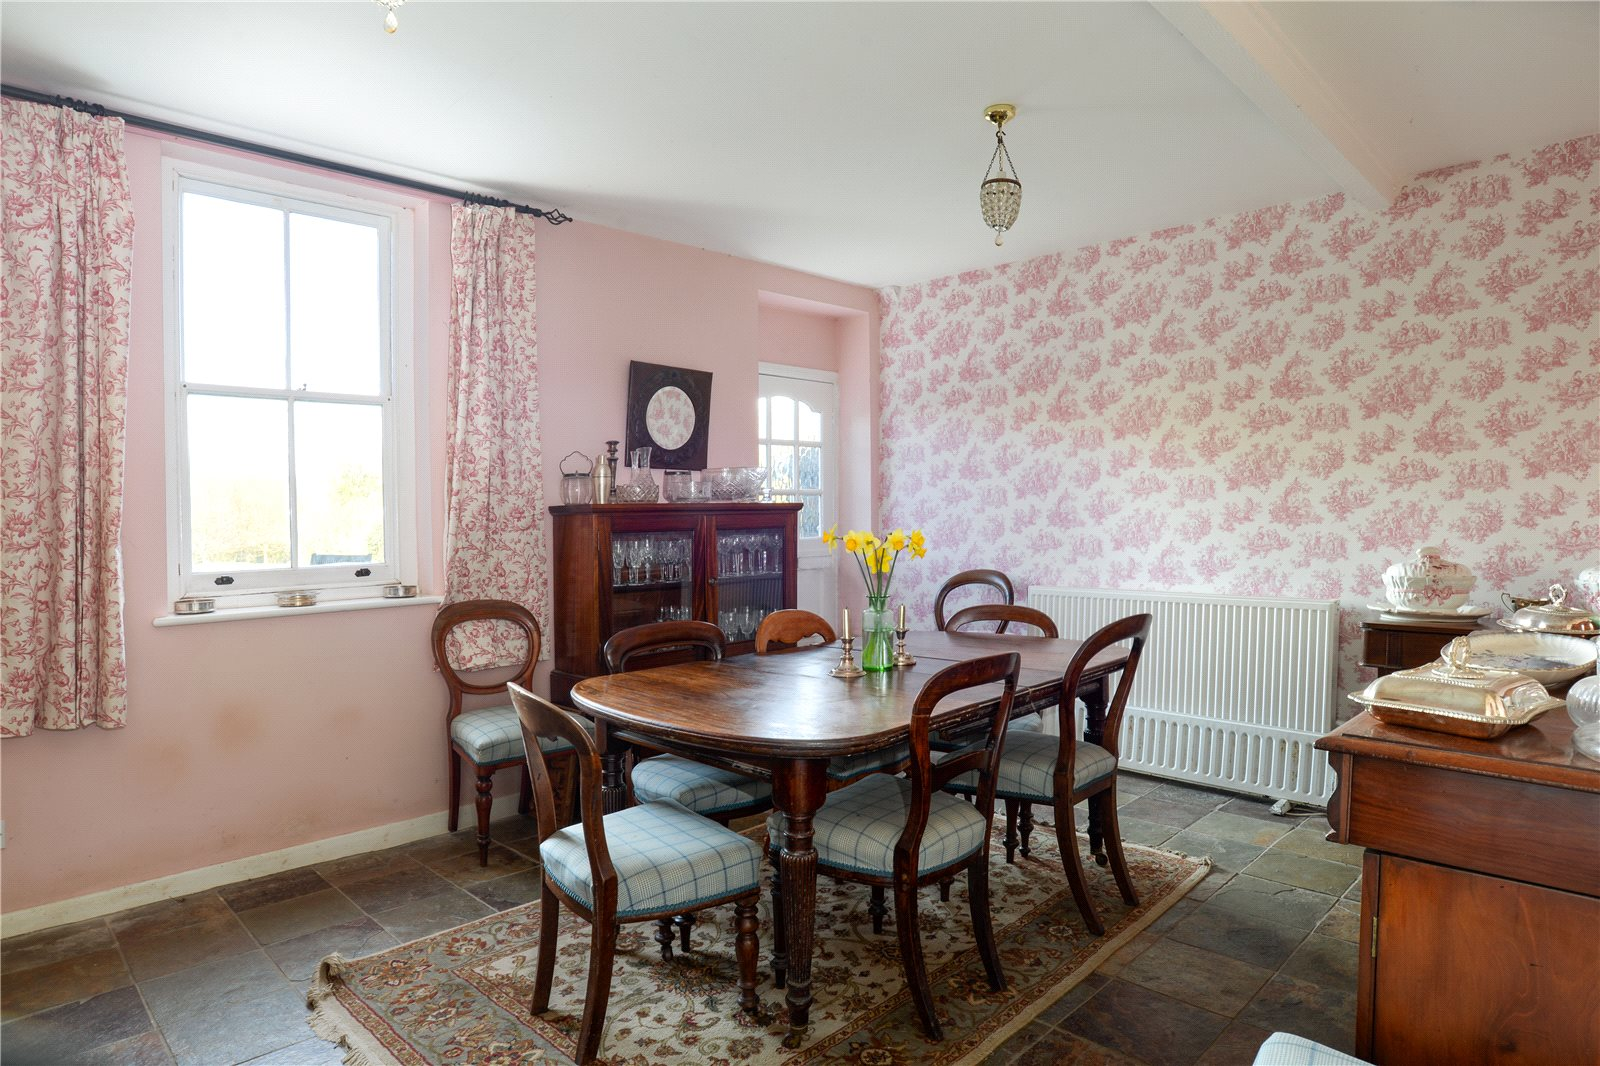 Additional photo for property listing at Fox Lane, Boughton-under-Blean, Faversham, Kent, ME13 Faversham, イギリス